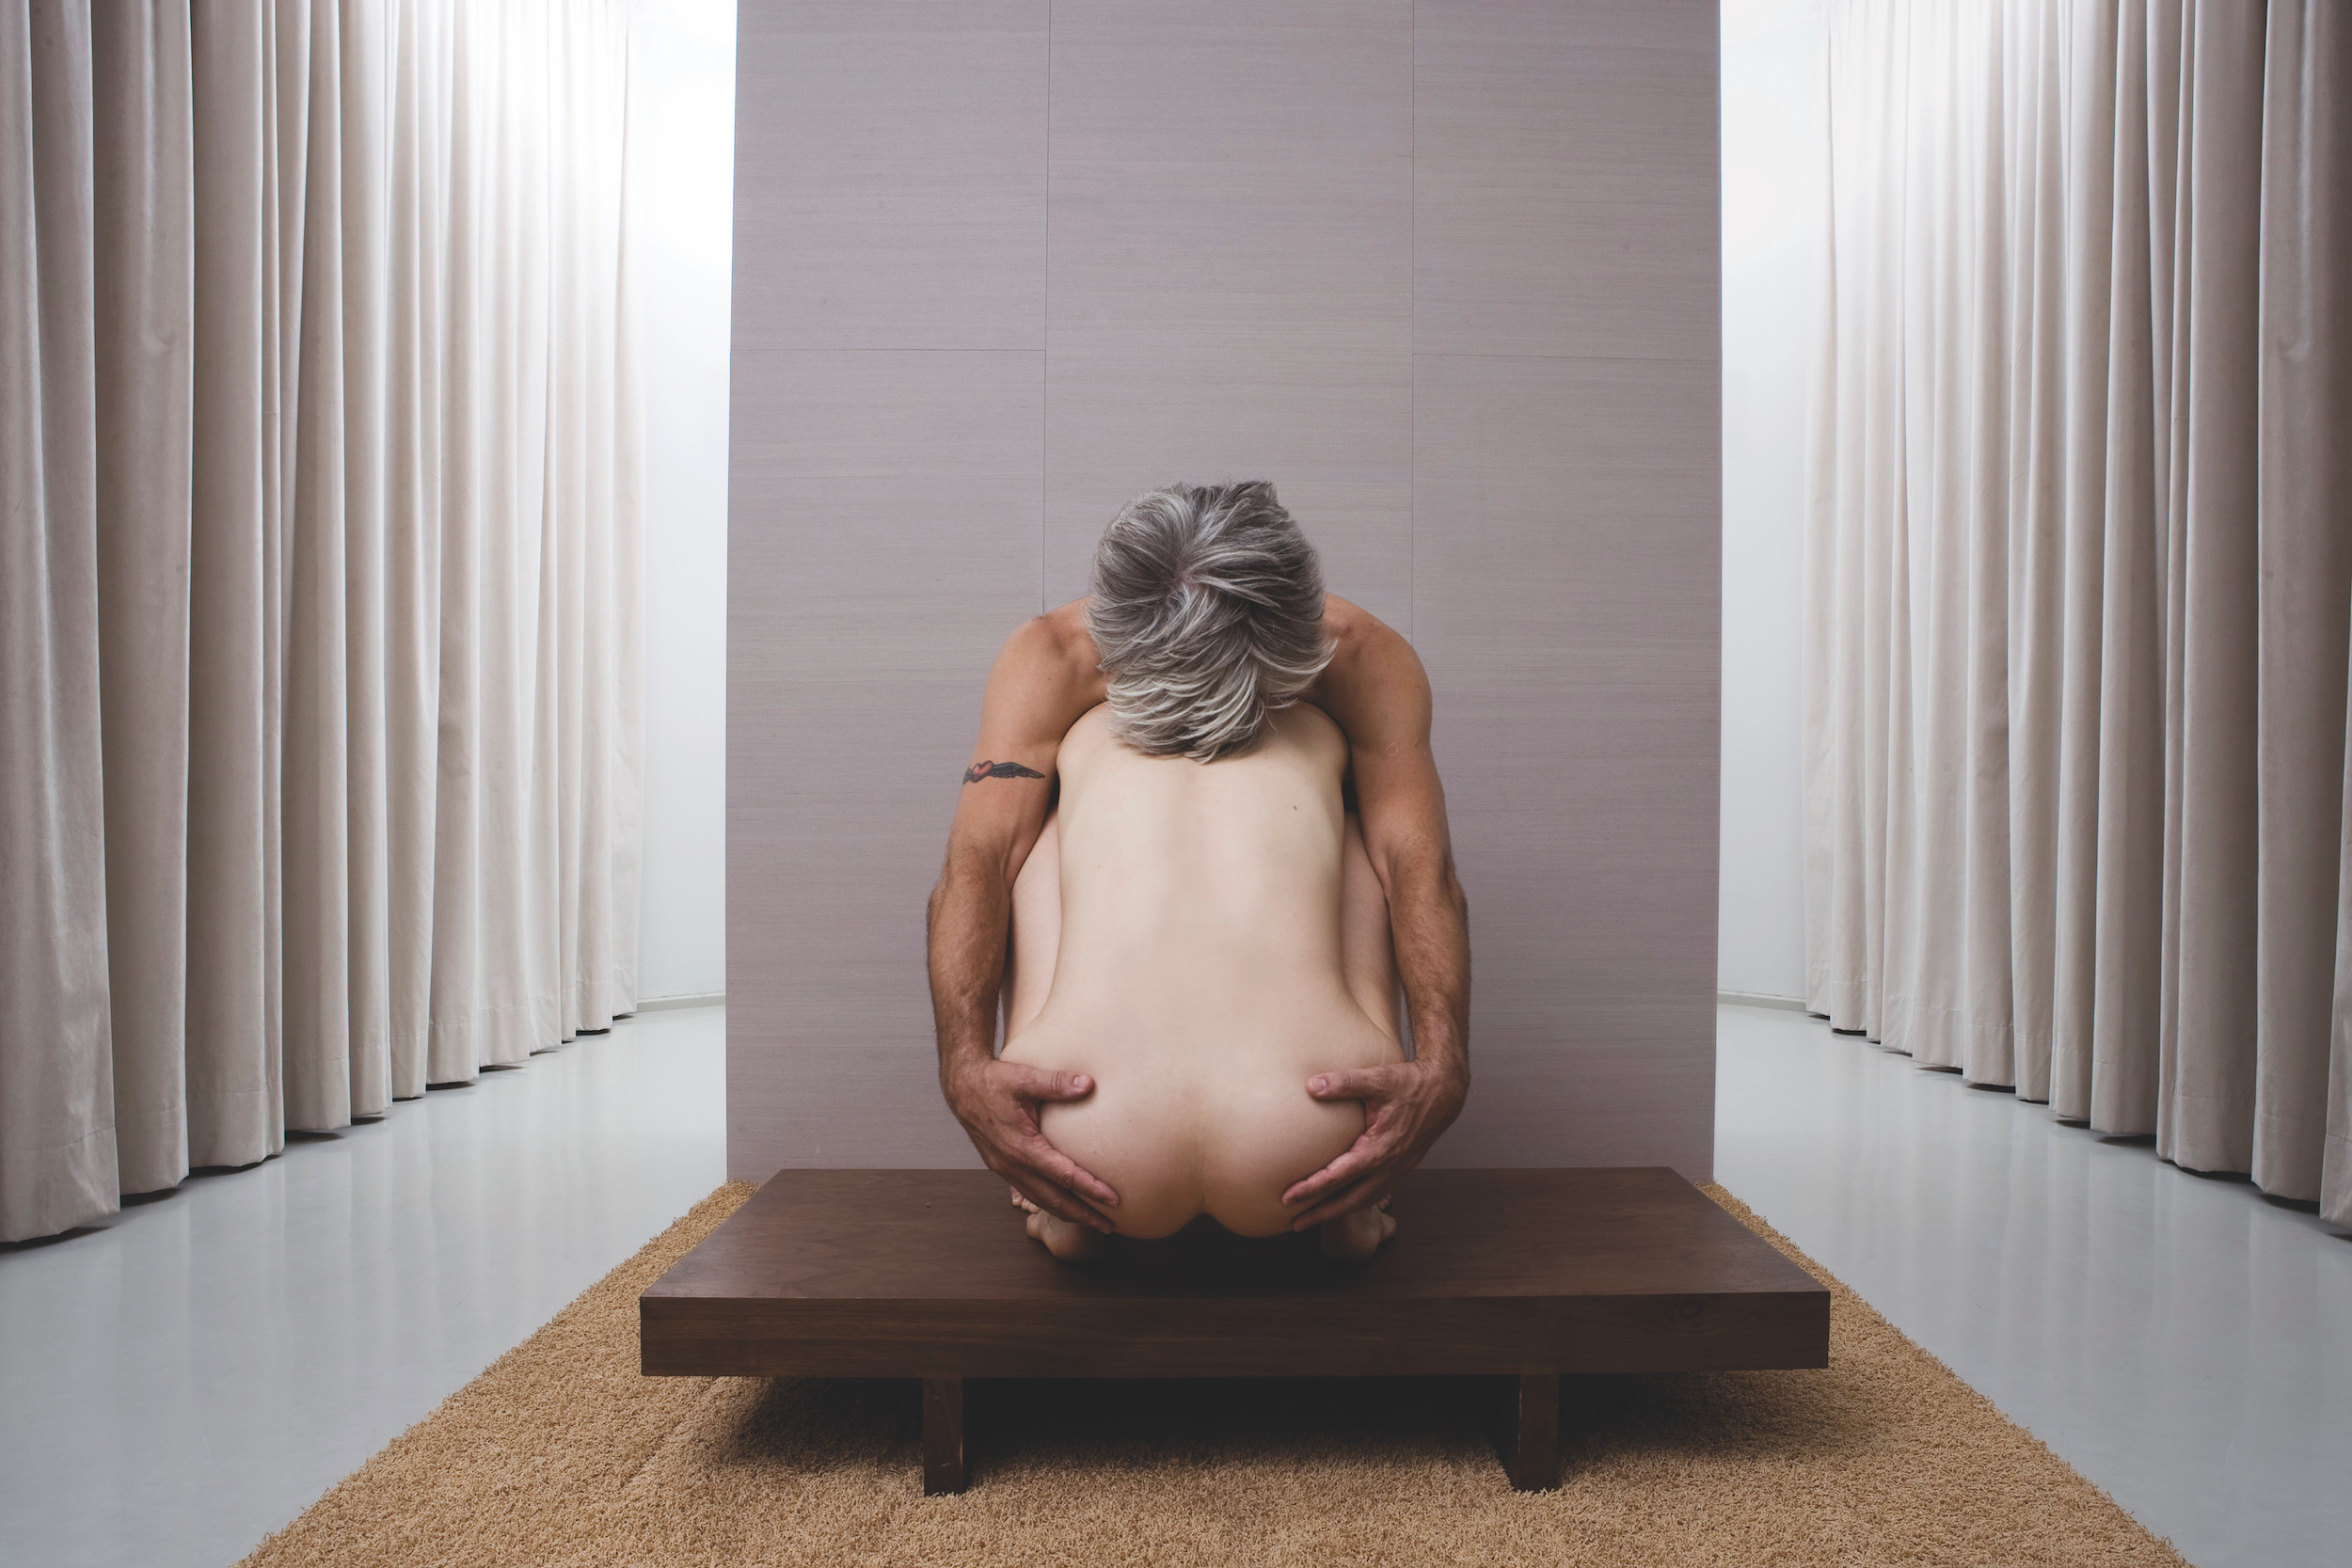 Curtis' arms and head (face hidden) frame Scaroni's back, as she squats on a short wooden platform in a beige curtained room. (photo: Sven Hagolani)